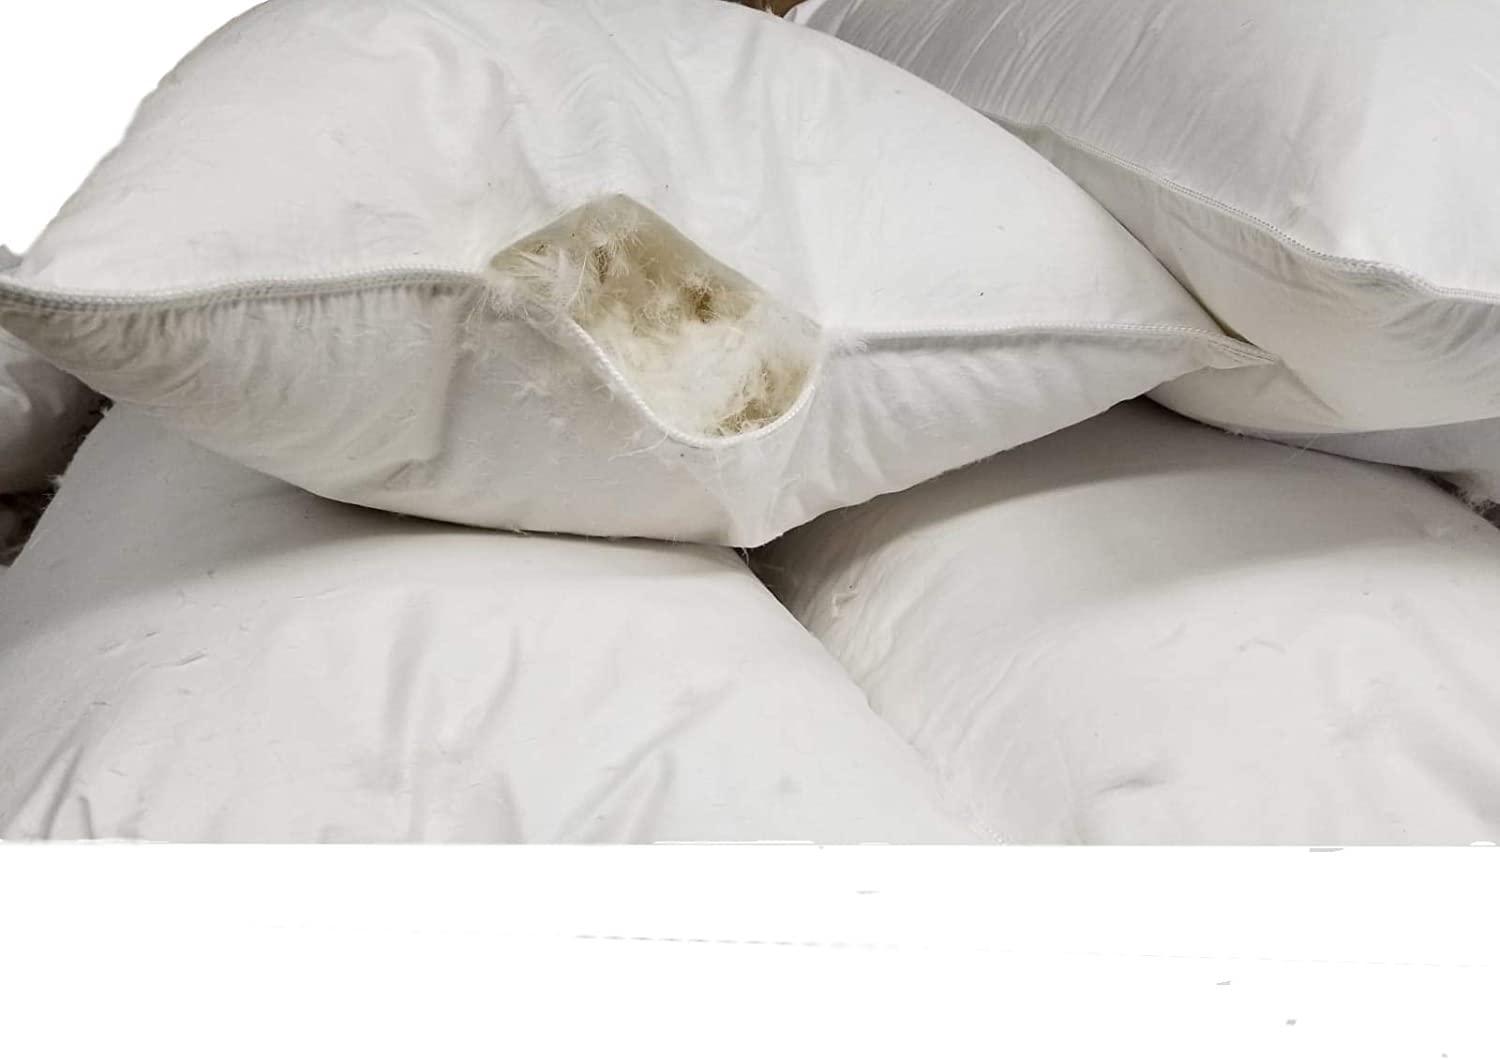 Amazon Com Empty Pillow Shells With No Filling 100 Cotton Pillow Shells Only Can Be Used W Bulk Down Fill Stuffing For Diy Making Own Pillows Standard Queen King Sizes Standard 400tc